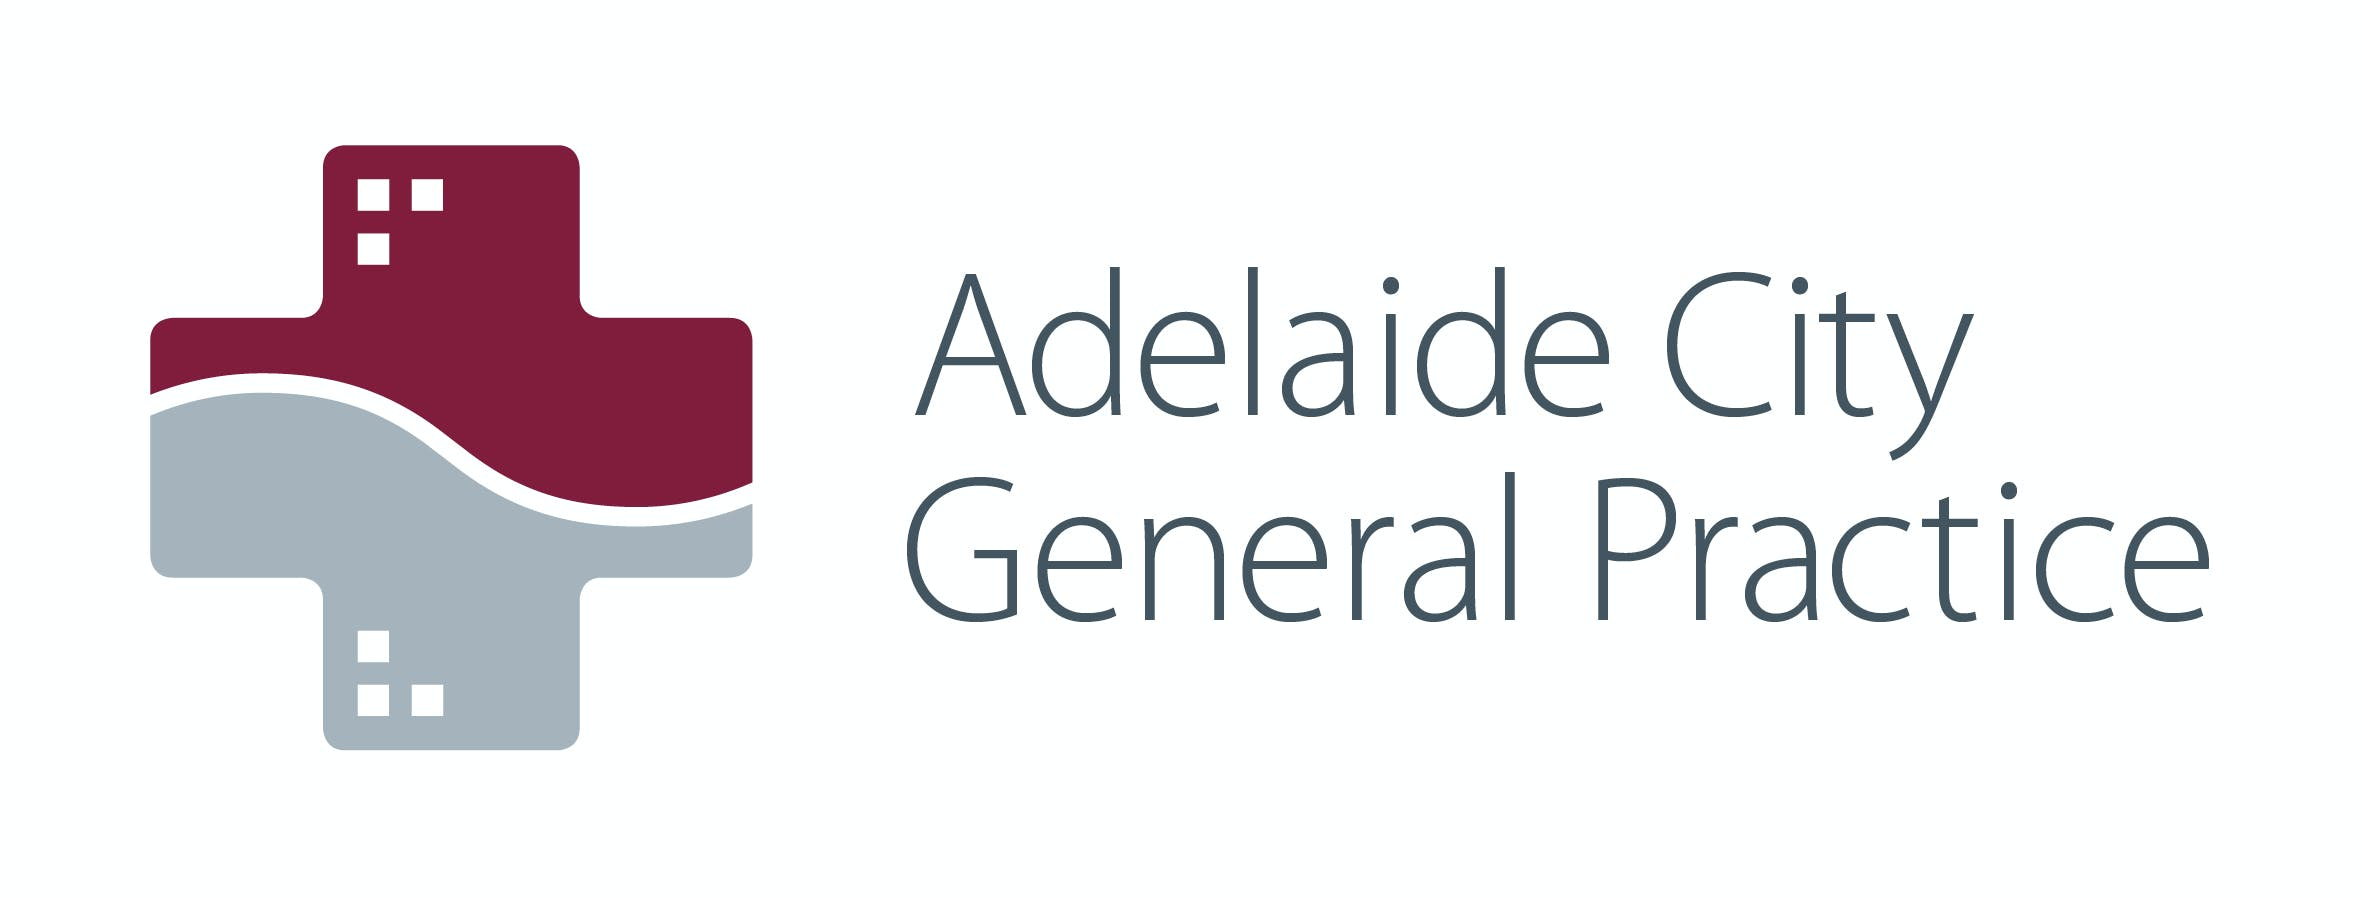 Adelaide City General Practice Logo